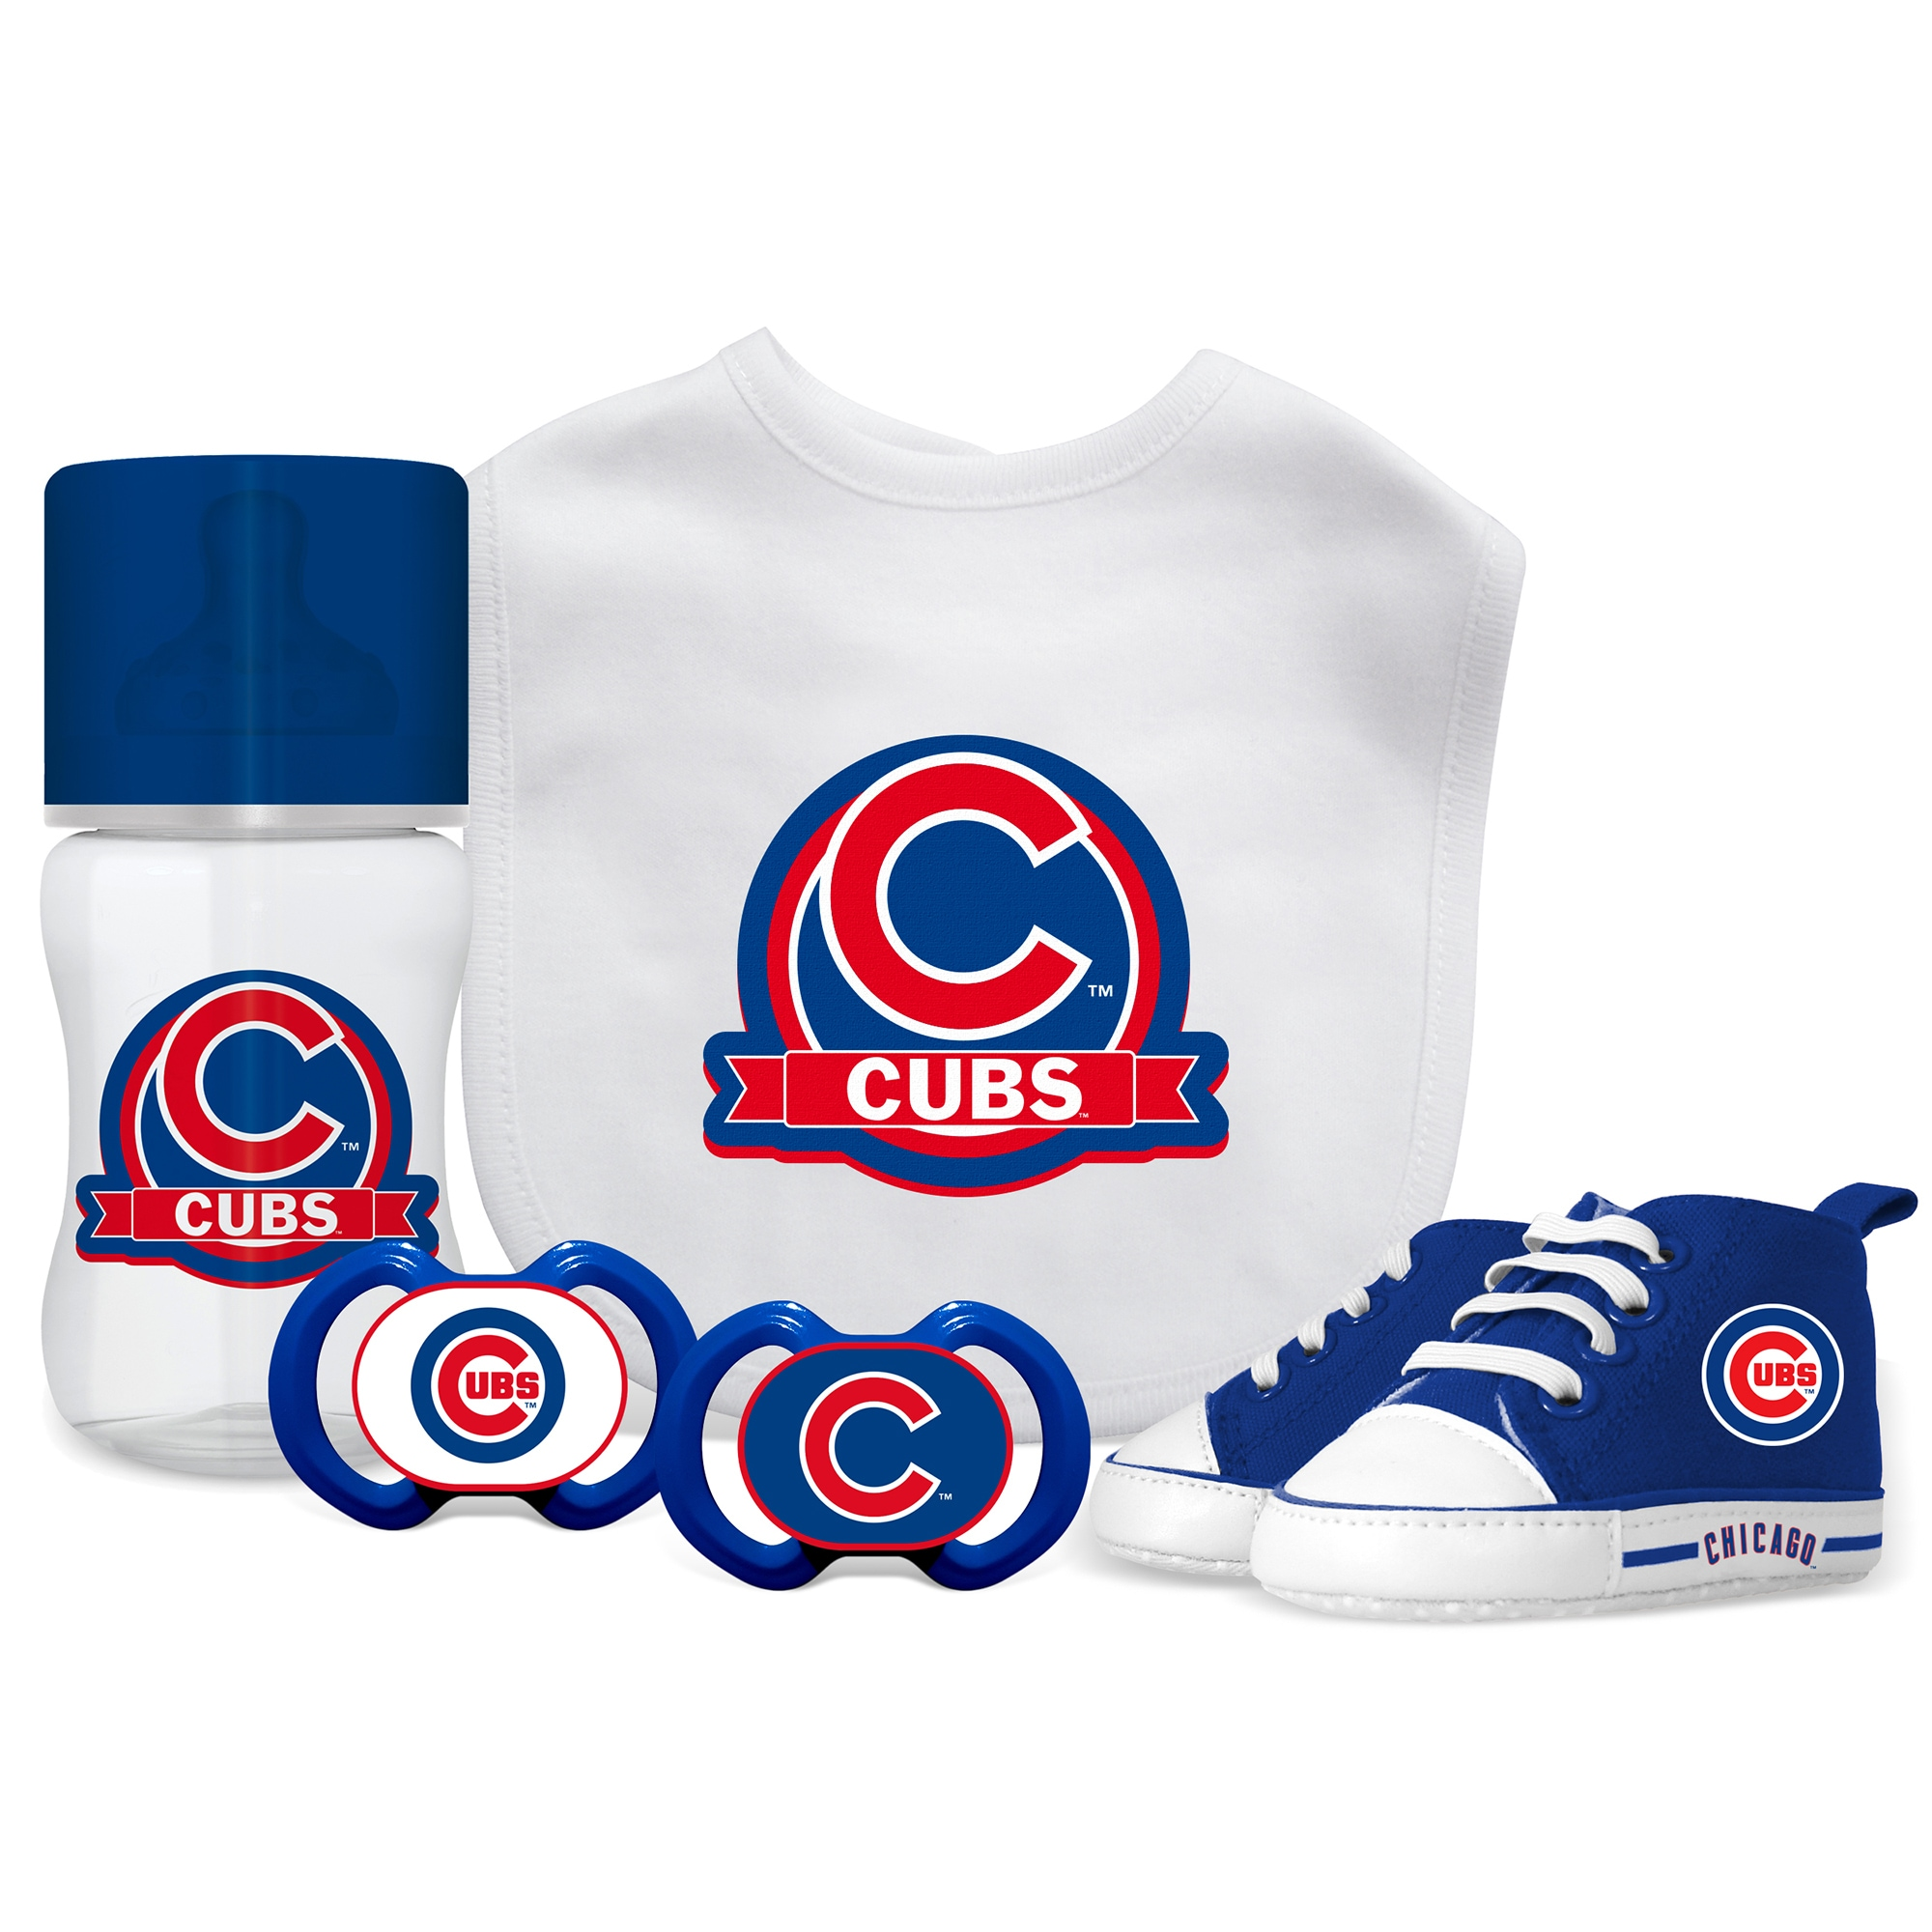 Chicago Cubs MLB 5 Pc Infant Gift Set Free Shipping Orders Over